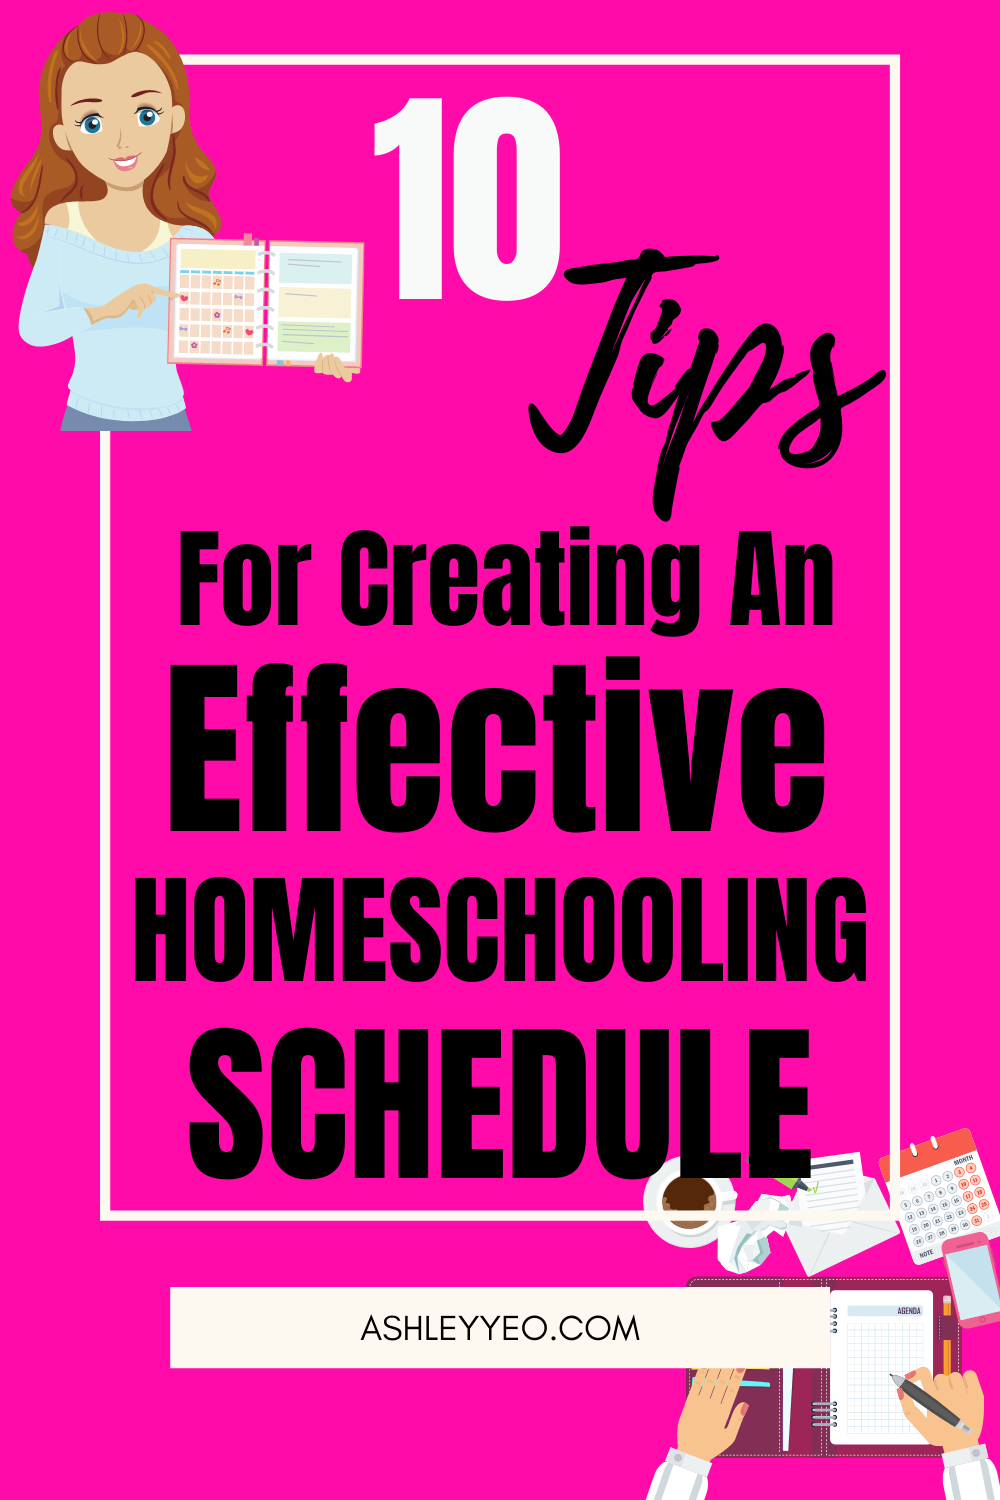 Ten Tips For Creating An Effective Homeschool Schedule